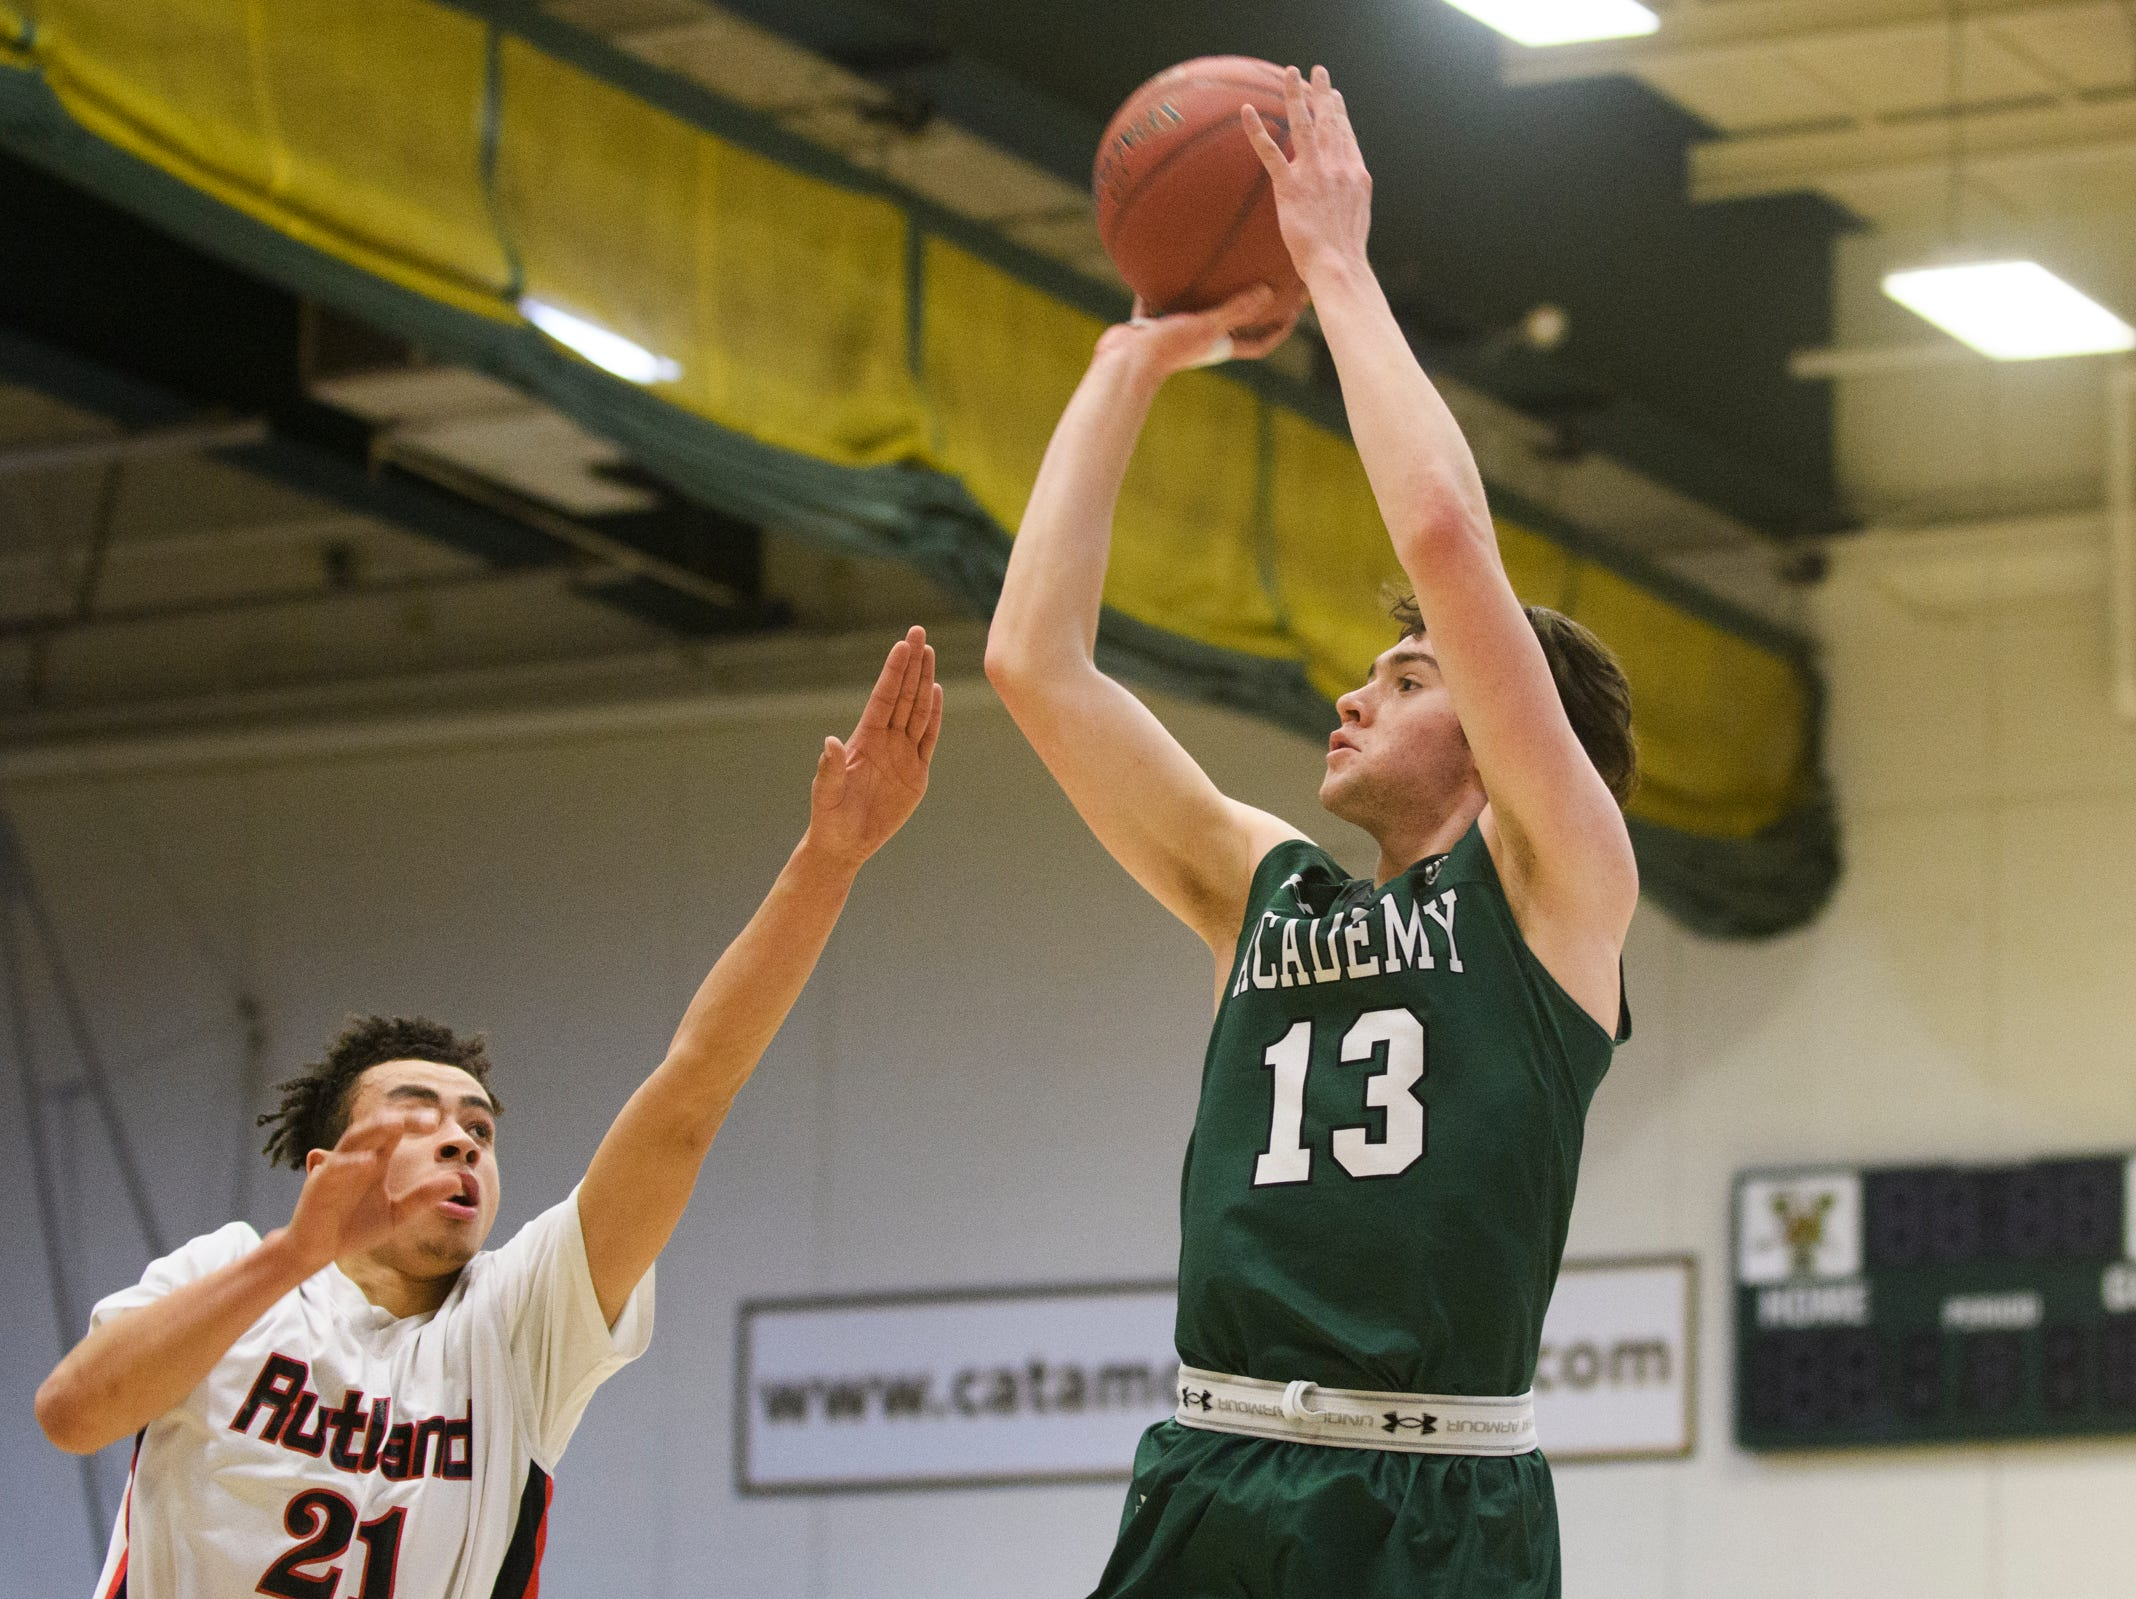 St. Johnsbury's Alex Carlisle (13) shoots the ball over Rutland's Jamison Evans (21) during the DI boys basketball championship game between the St. Johnsbury Hilltoppers and the Rutland Raiders at Patrick Gym on Sunday afternoon March 17, 2019 in Burlington, Vermont.